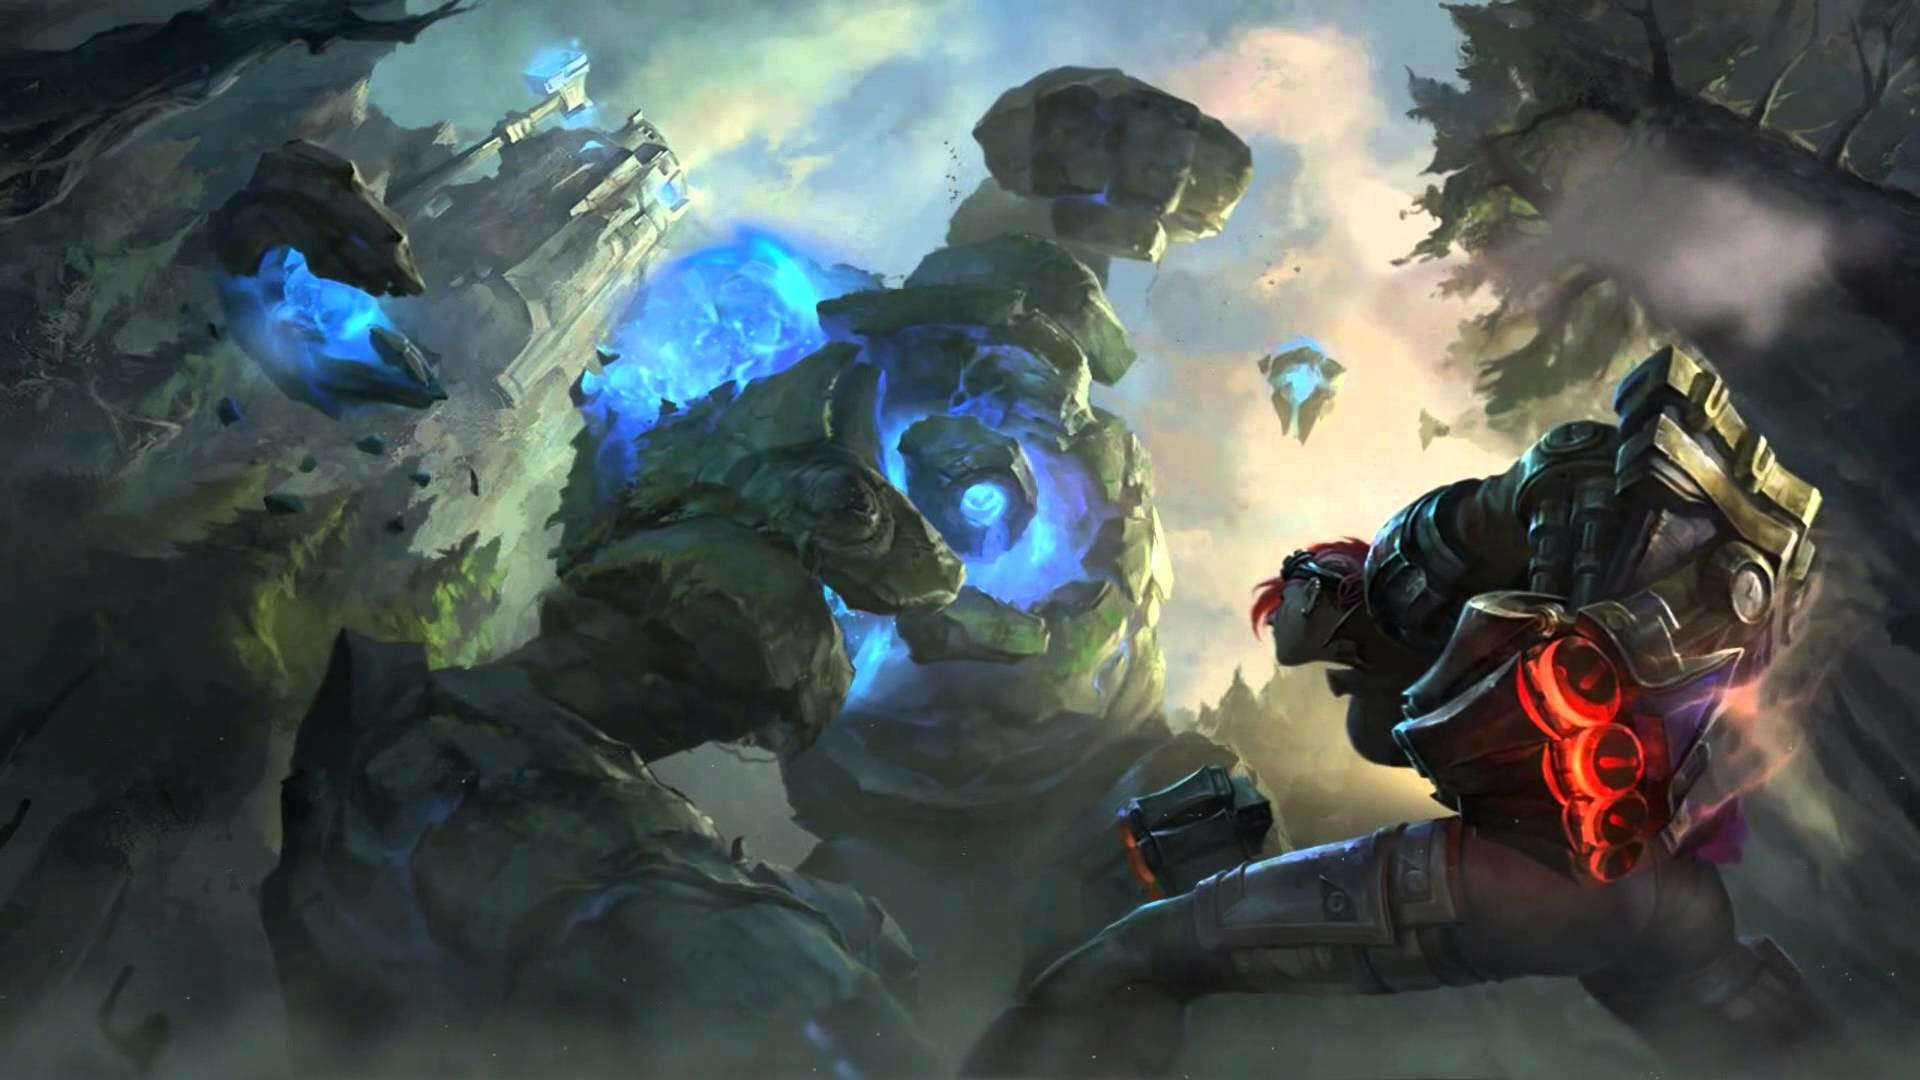 Res: 1920x1080, New Summoner's Rift Login Screen with Music - League of Legends - YouTube